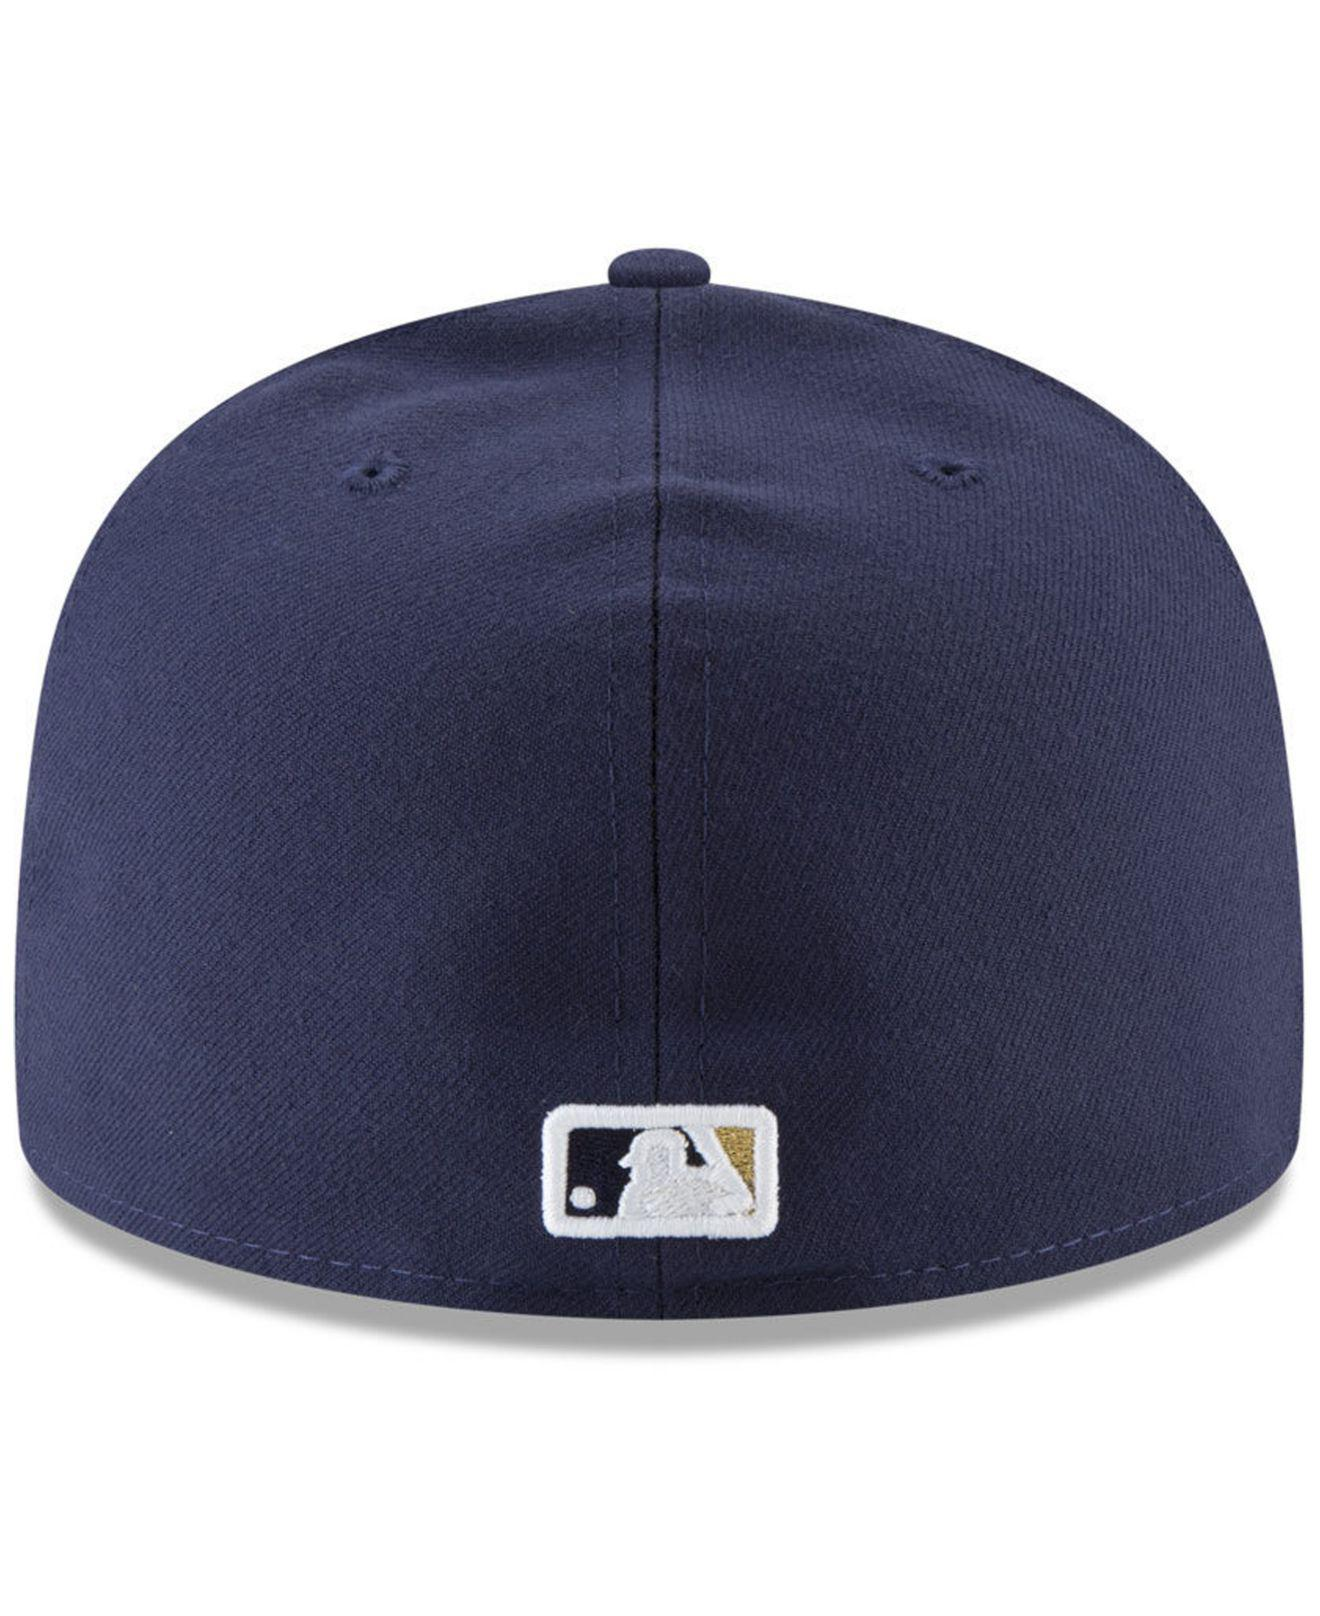 Lyst - KTZ Milwaukee Brewers Sandlot Patch 59fifty Fitted Cap in ... b0470b750070